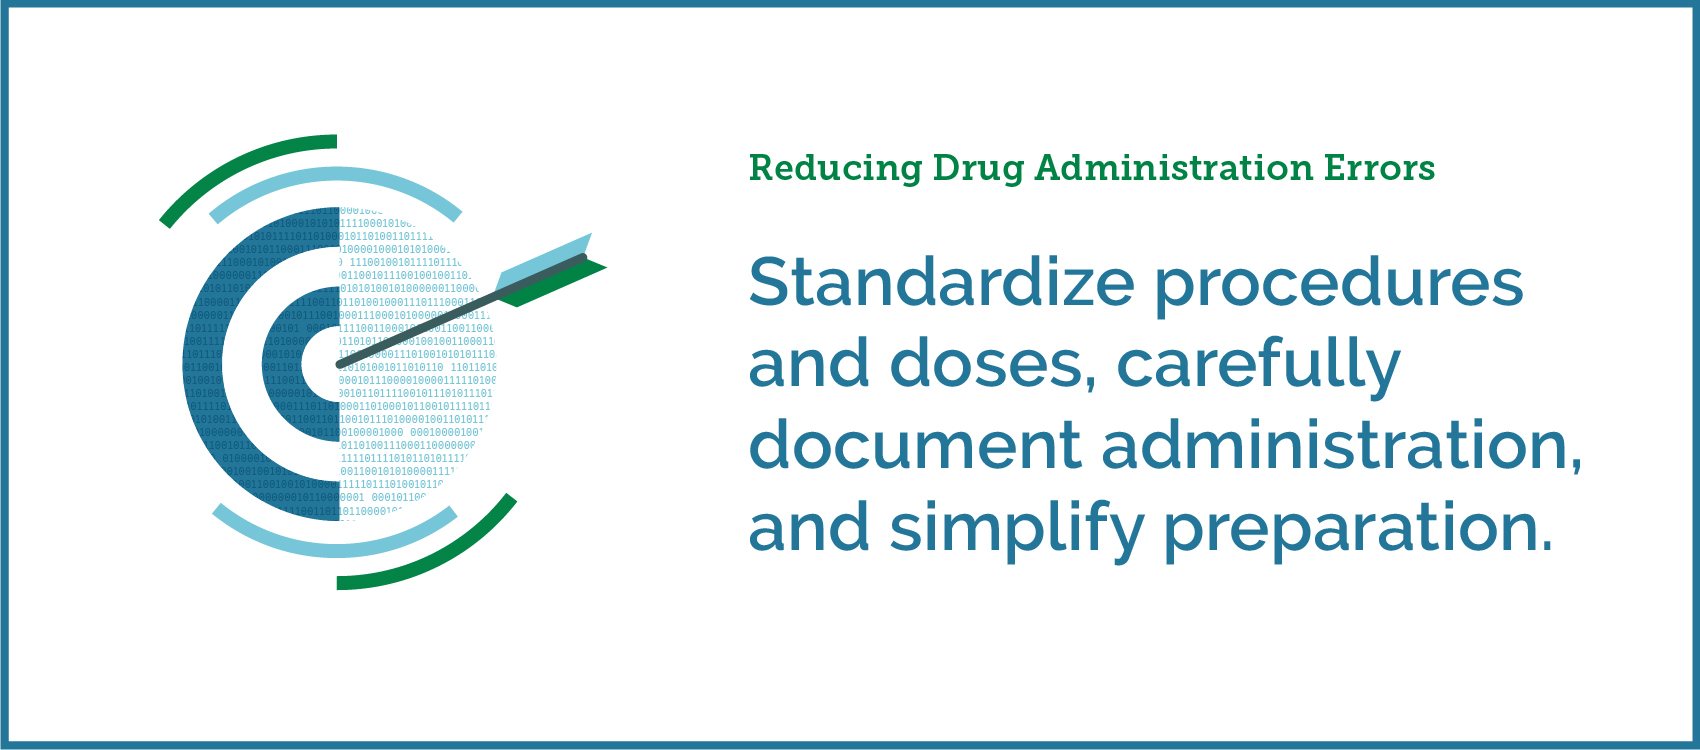 Reducing Drug Administration Errors